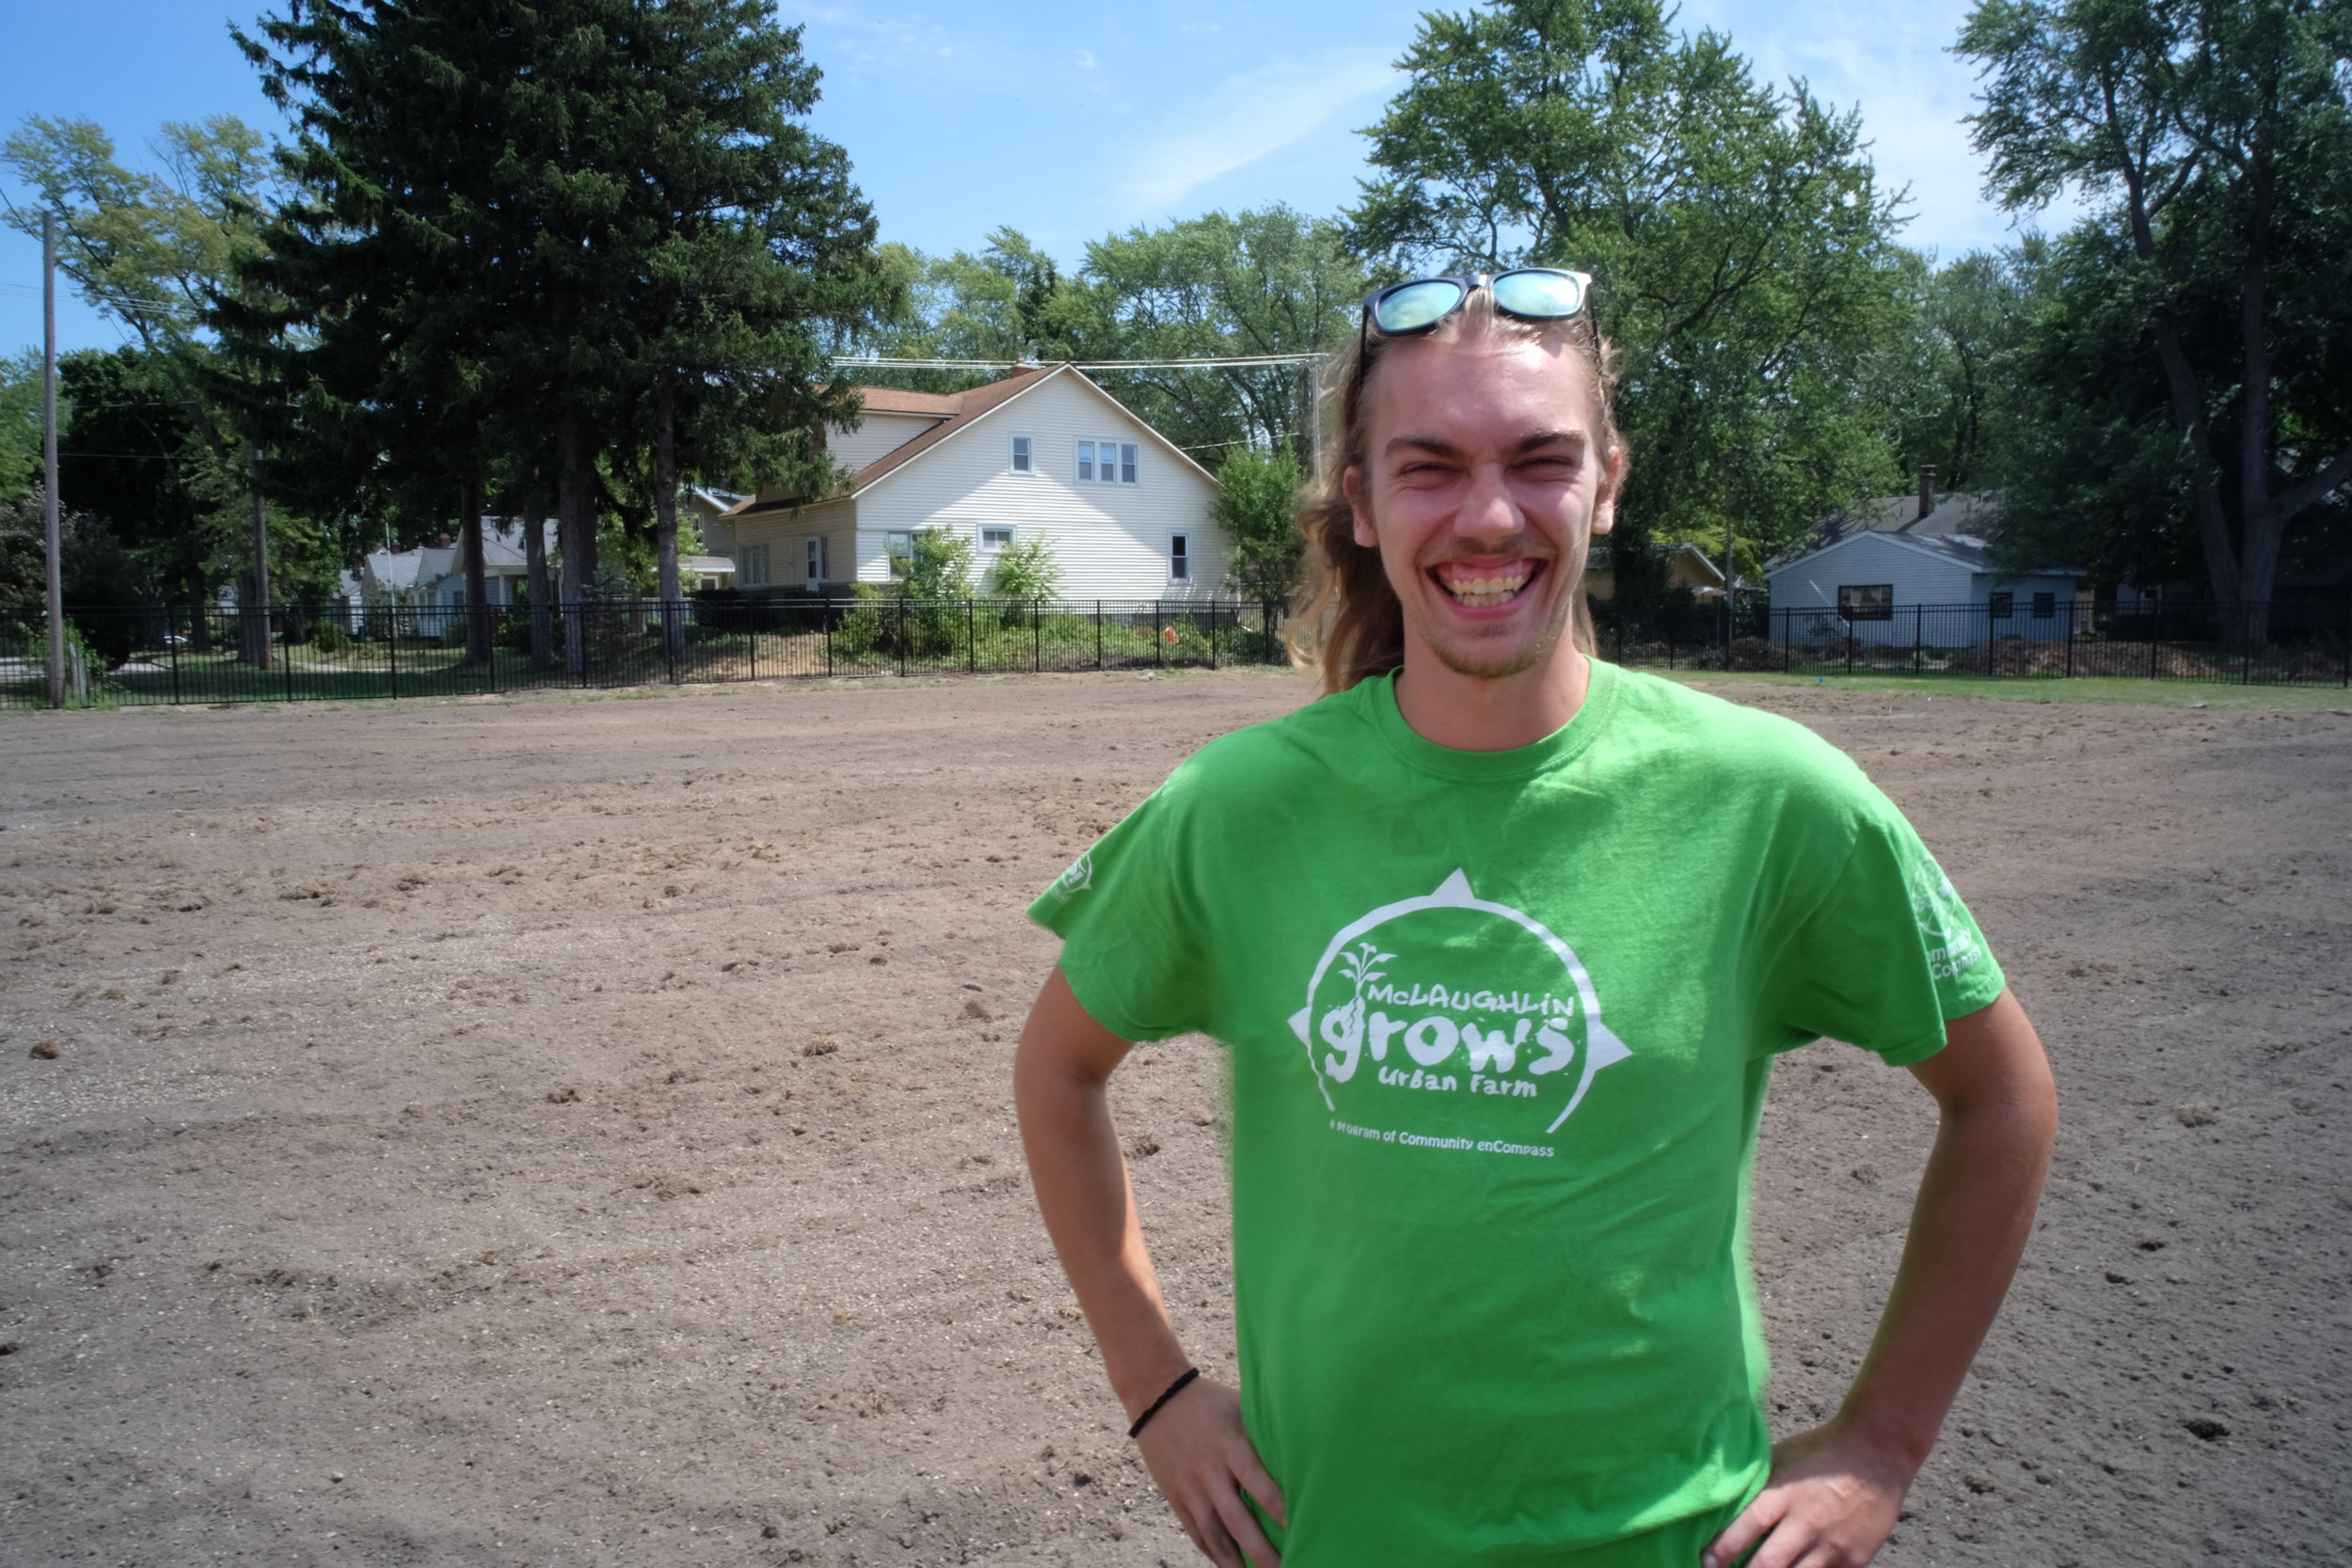 """""""I'm Adam Swanson. I'm an MSU Student, in my 3rd year, majoring in Sustainability and Community Development. Most of my summers growing up were spent with Community enCompass on the farm: I started as a Growing Goods student in summer school when I was in Junior High School. Then, I was a YEP in high school, leading other Junior High School kids at the Farm. And this summer I came back again to lead the farm's newest development at the old Nims School."""""""